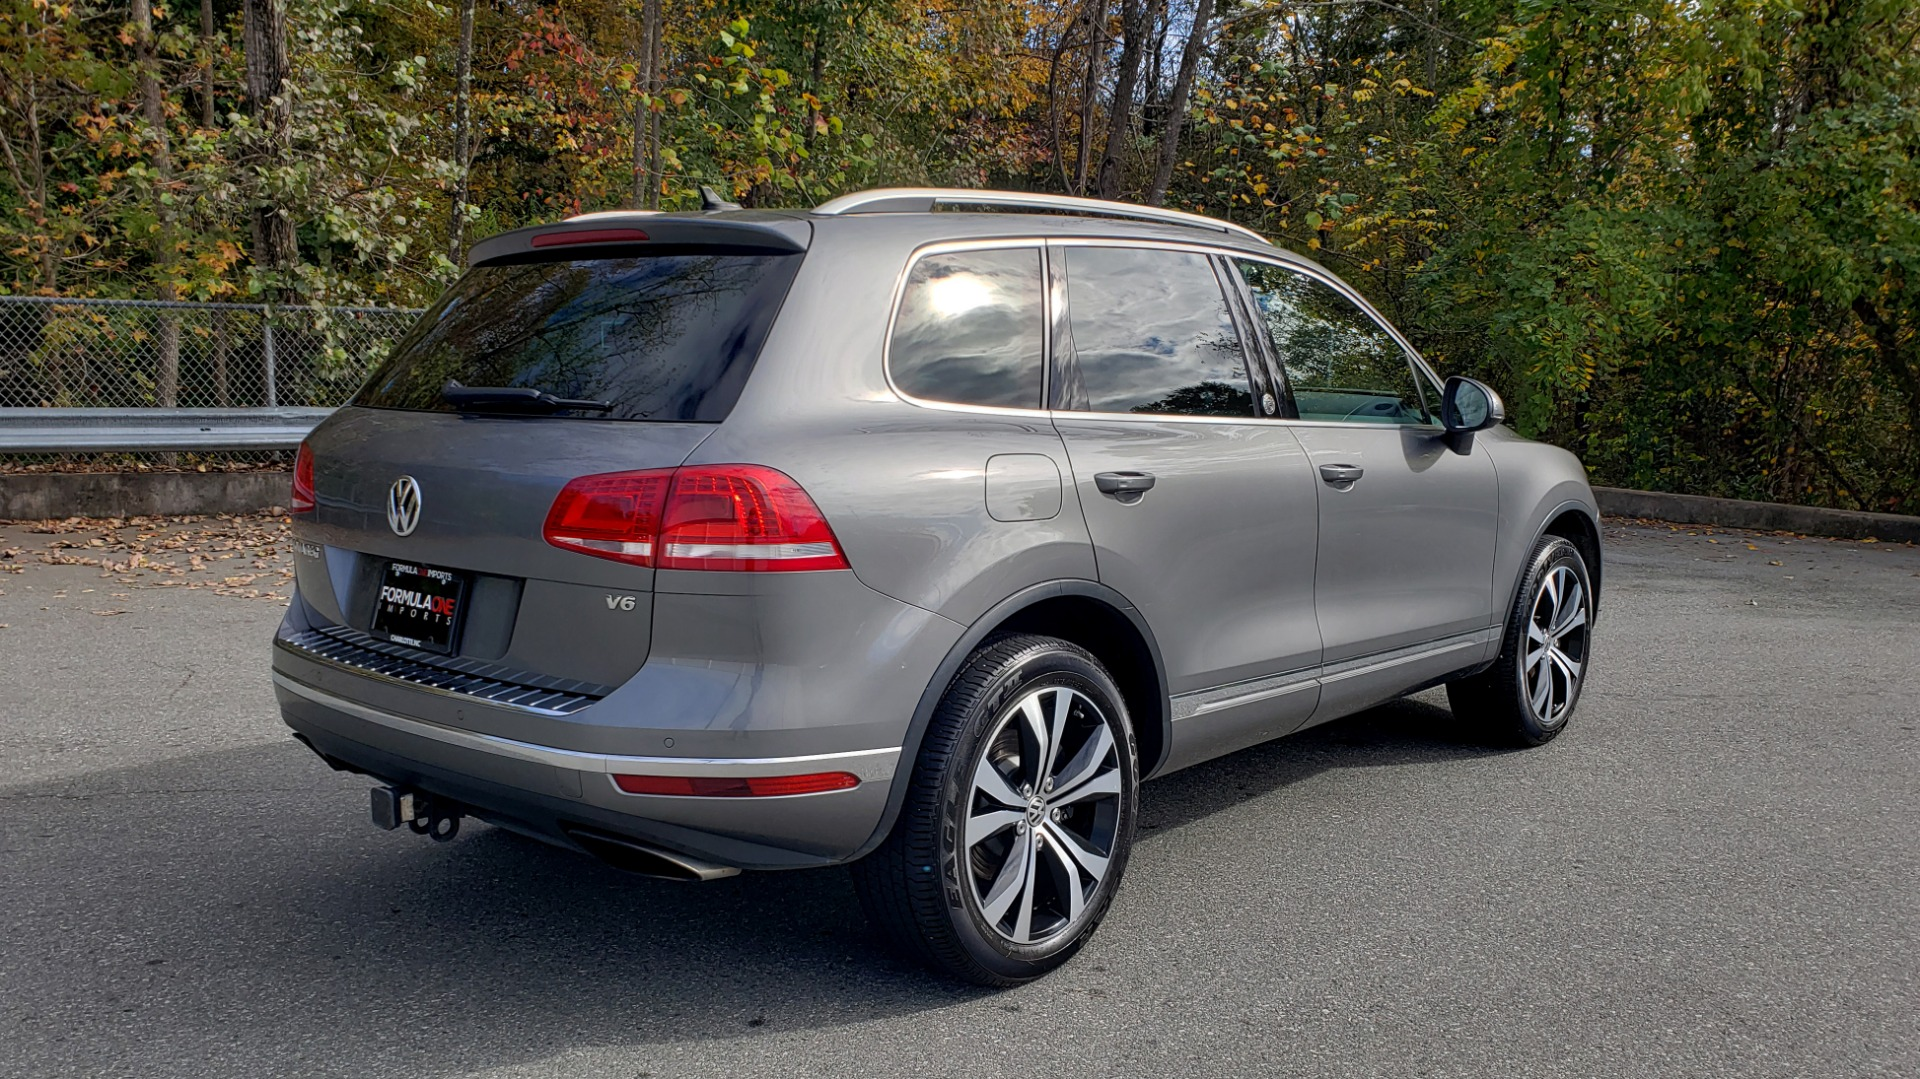 Used 2017 Volkswagen TOUAREG V6 WOLFSBURG EDITION / NAV / PANO-ROOF / ACC / REARVIEW for sale Sold at Formula Imports in Charlotte NC 28227 7